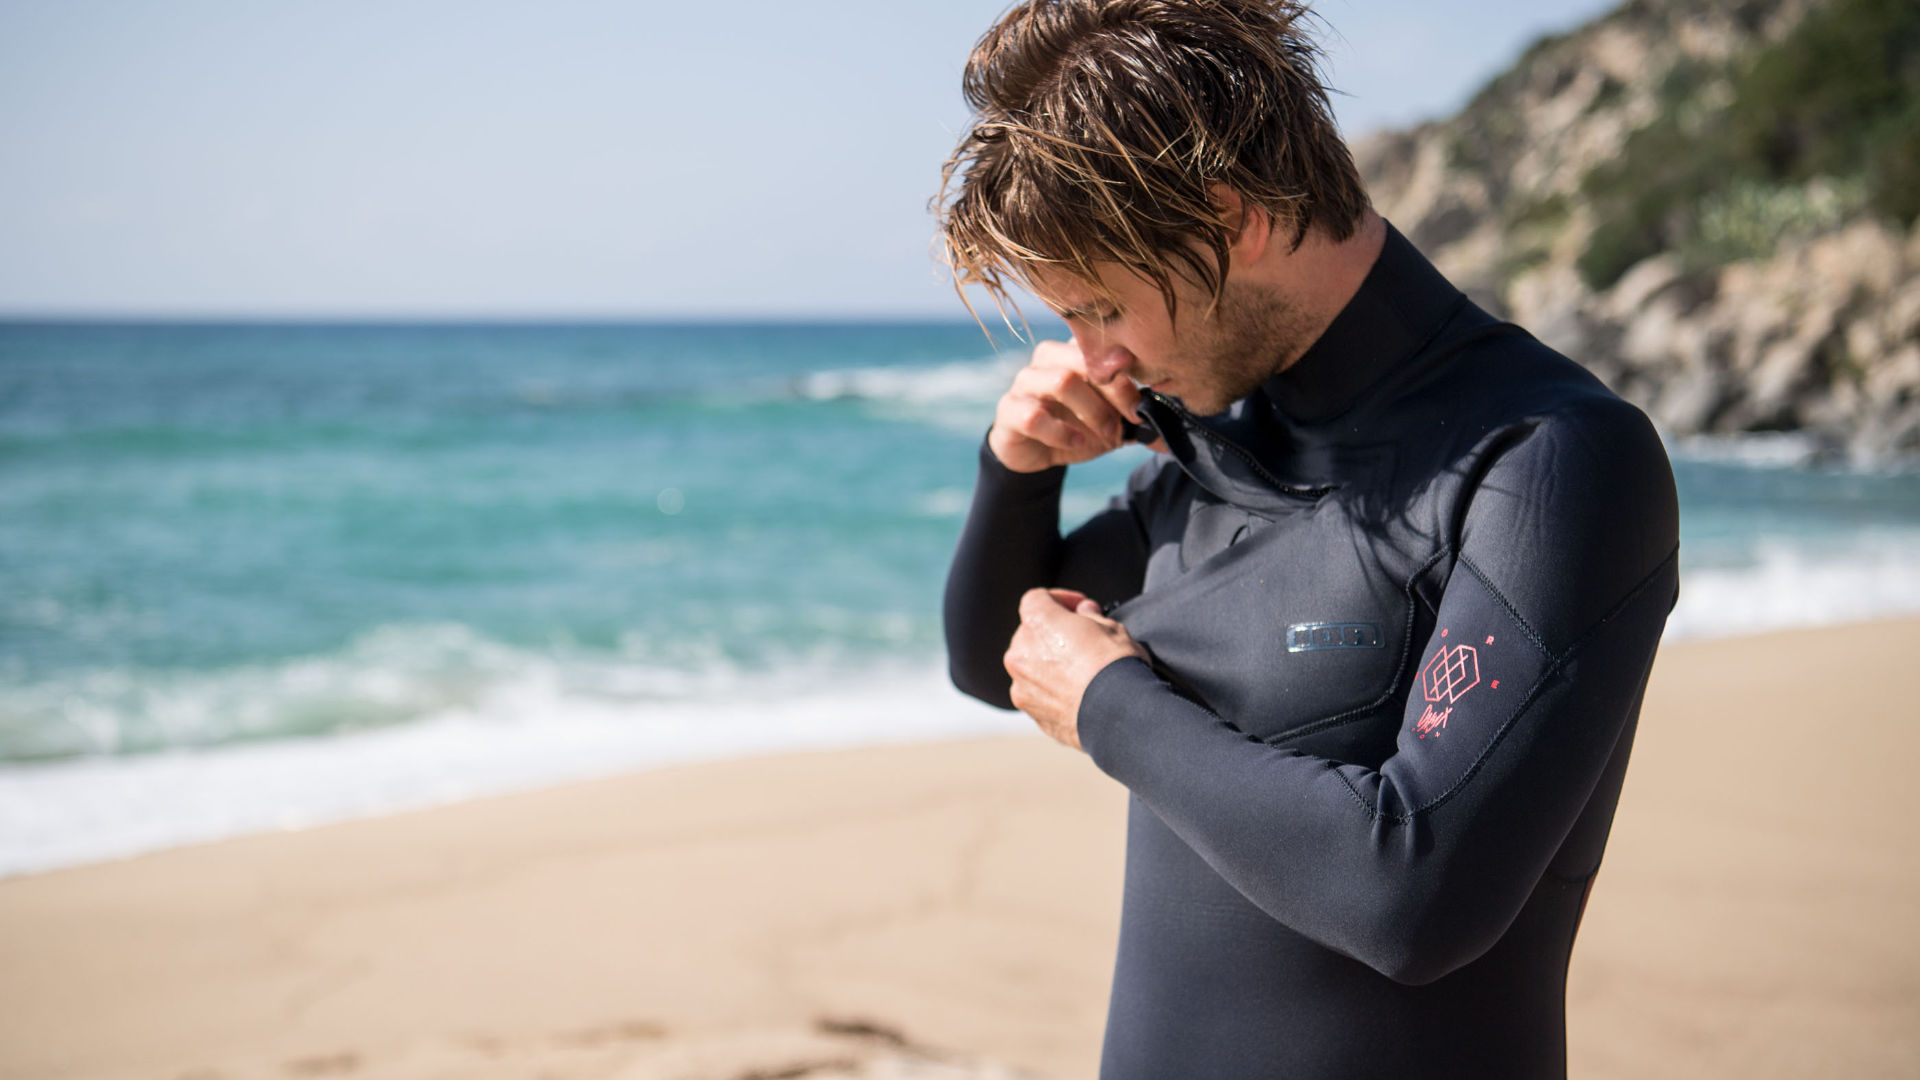 Surfer getting into his chest zip wetsuit